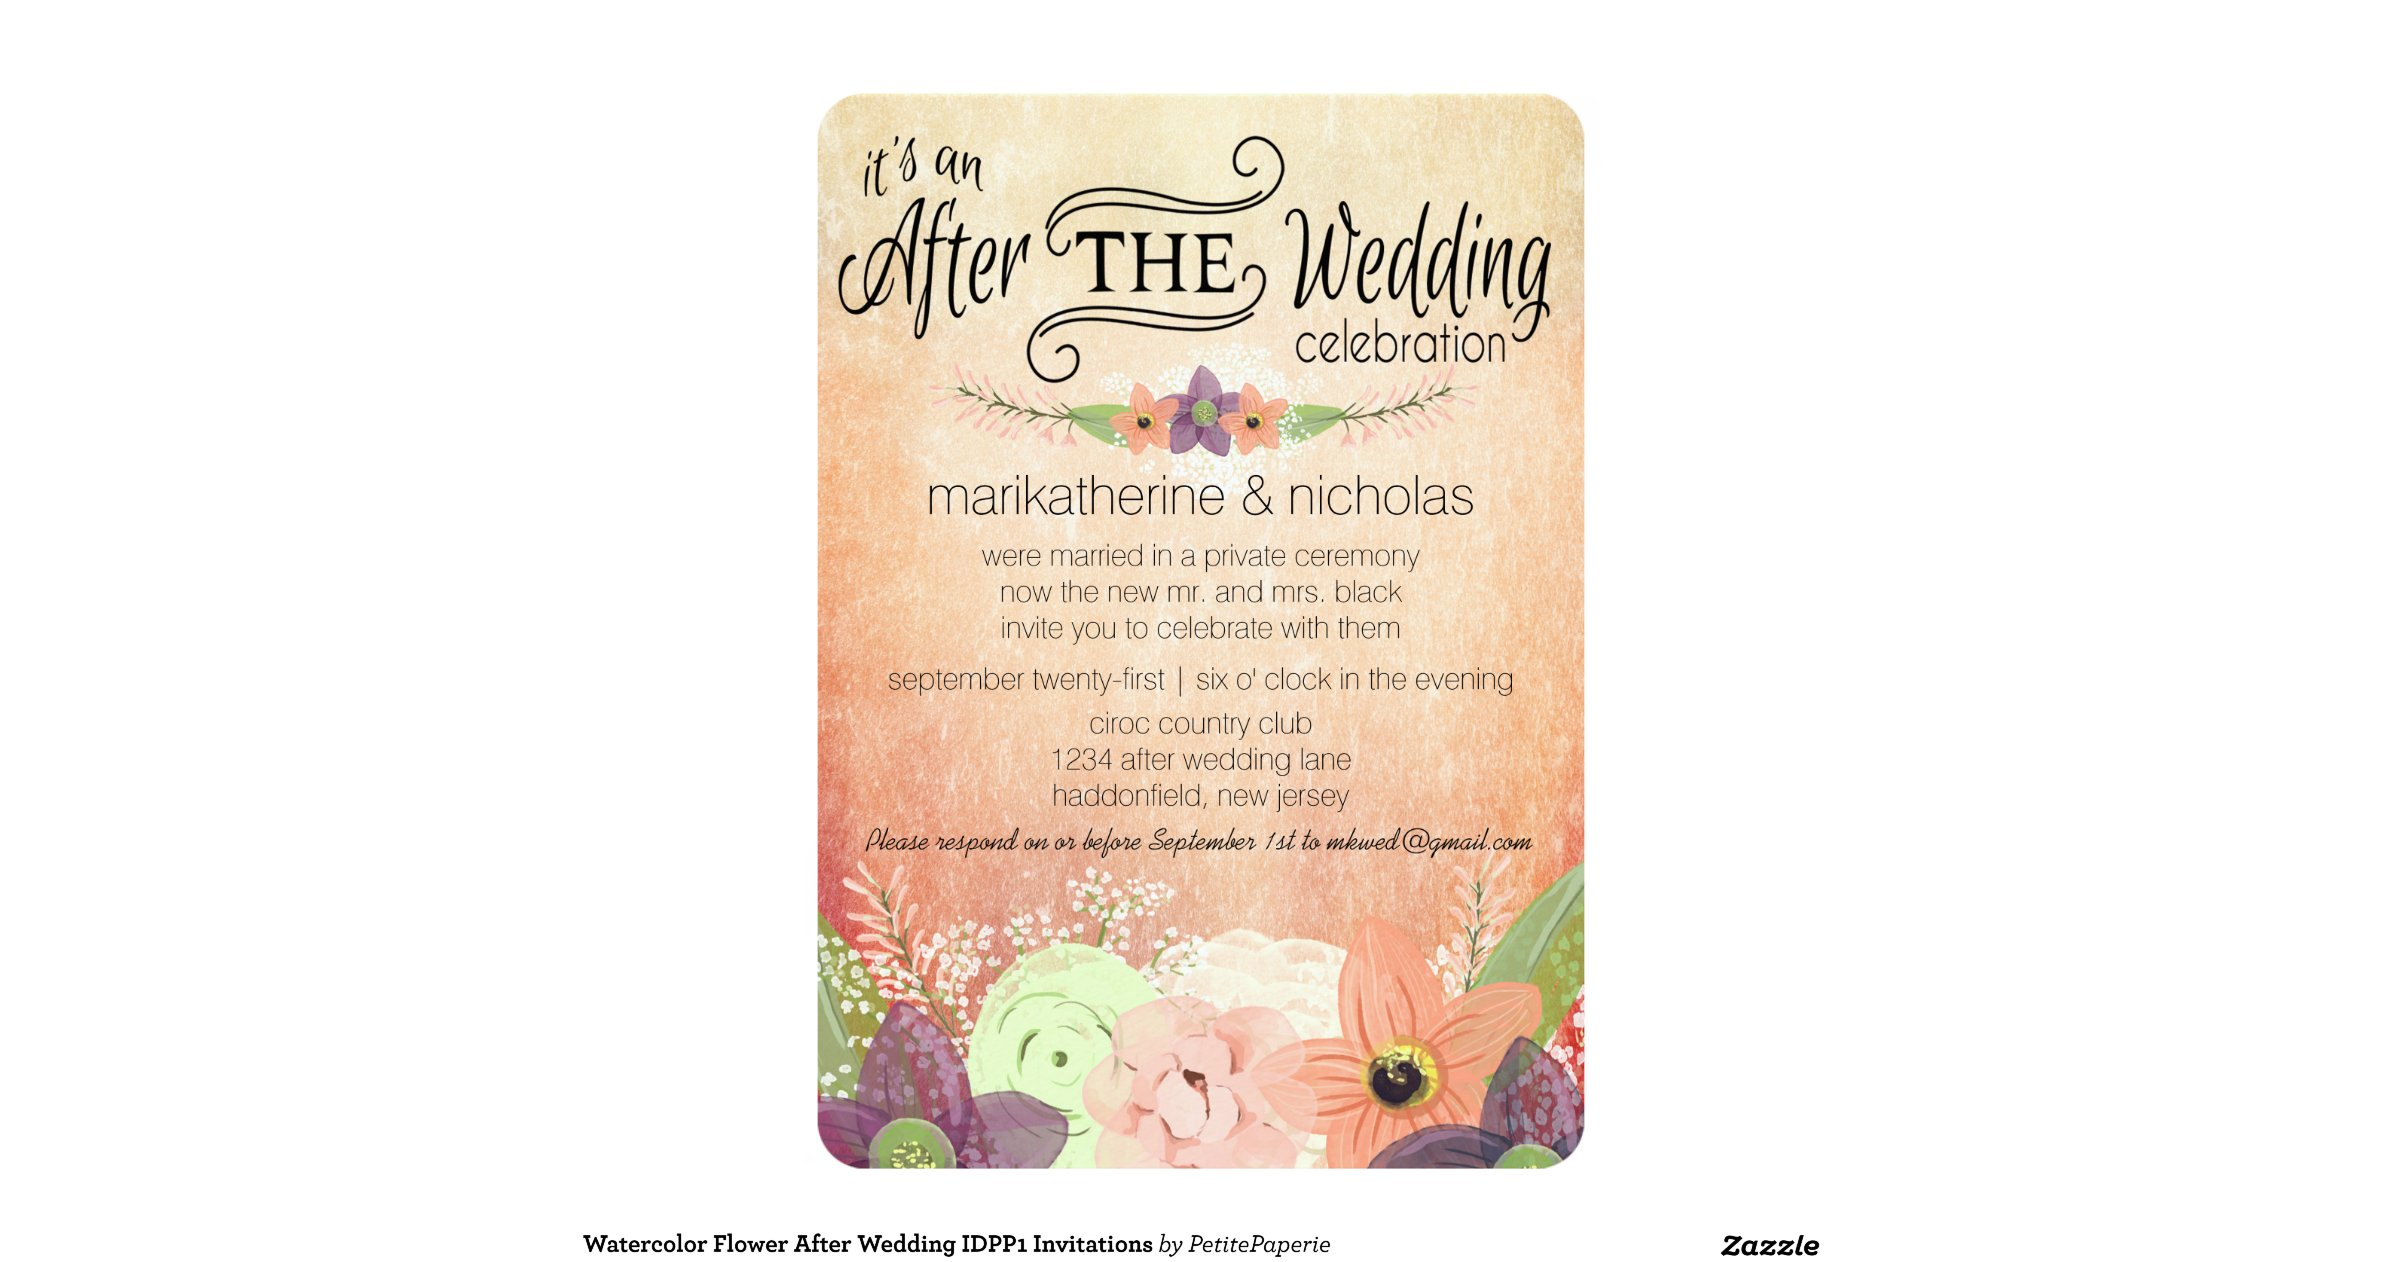 After The Wedding Party Invitations: Watercolor Flowers After Wedding Party Invitations